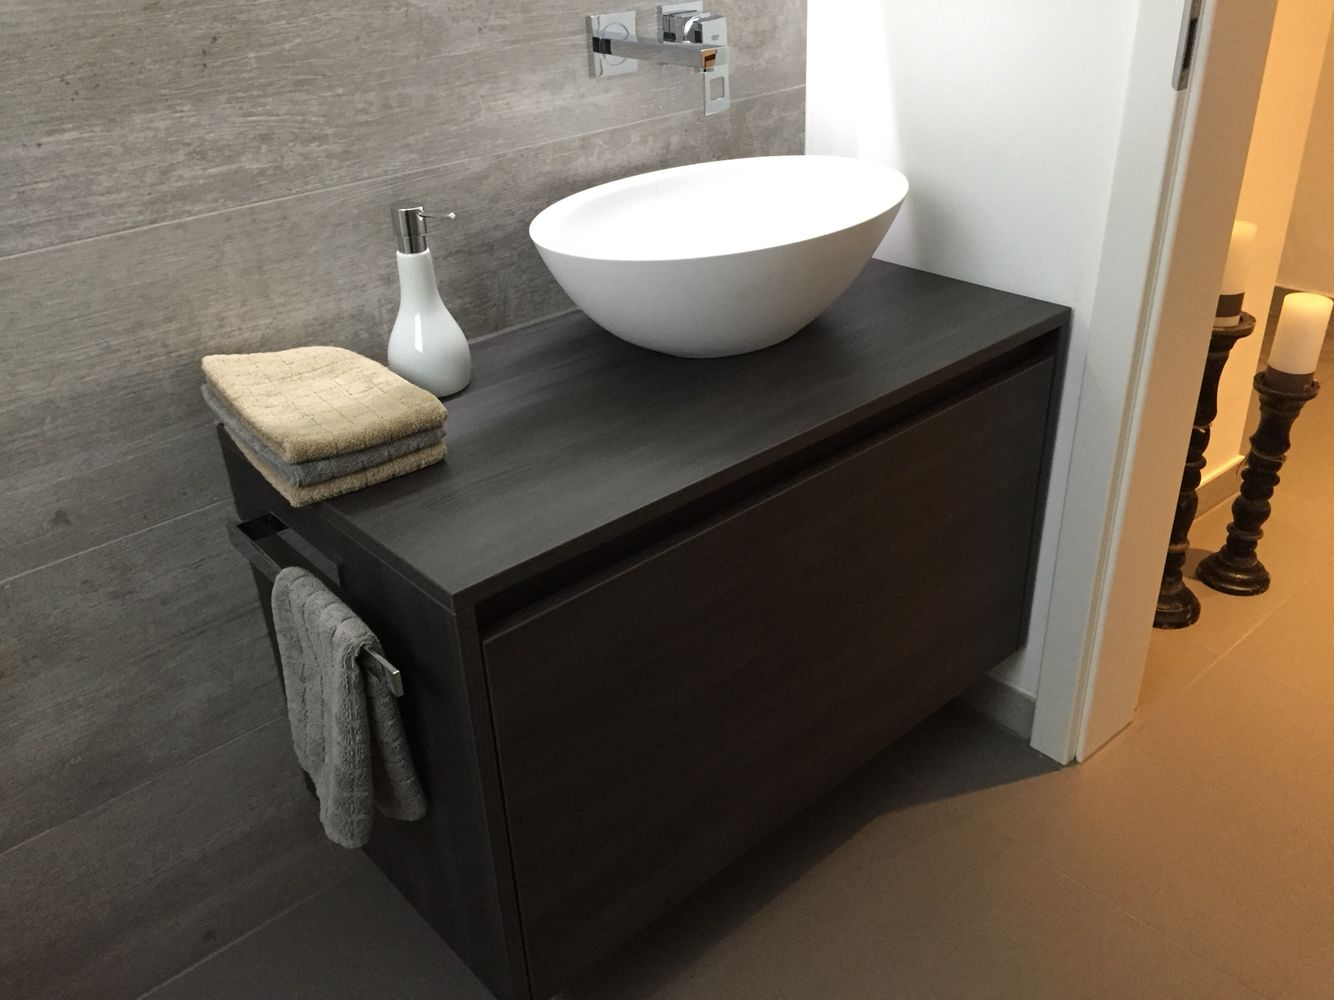 aufsatzwaschbecken g ste wc. Black Bedroom Furniture Sets. Home Design Ideas